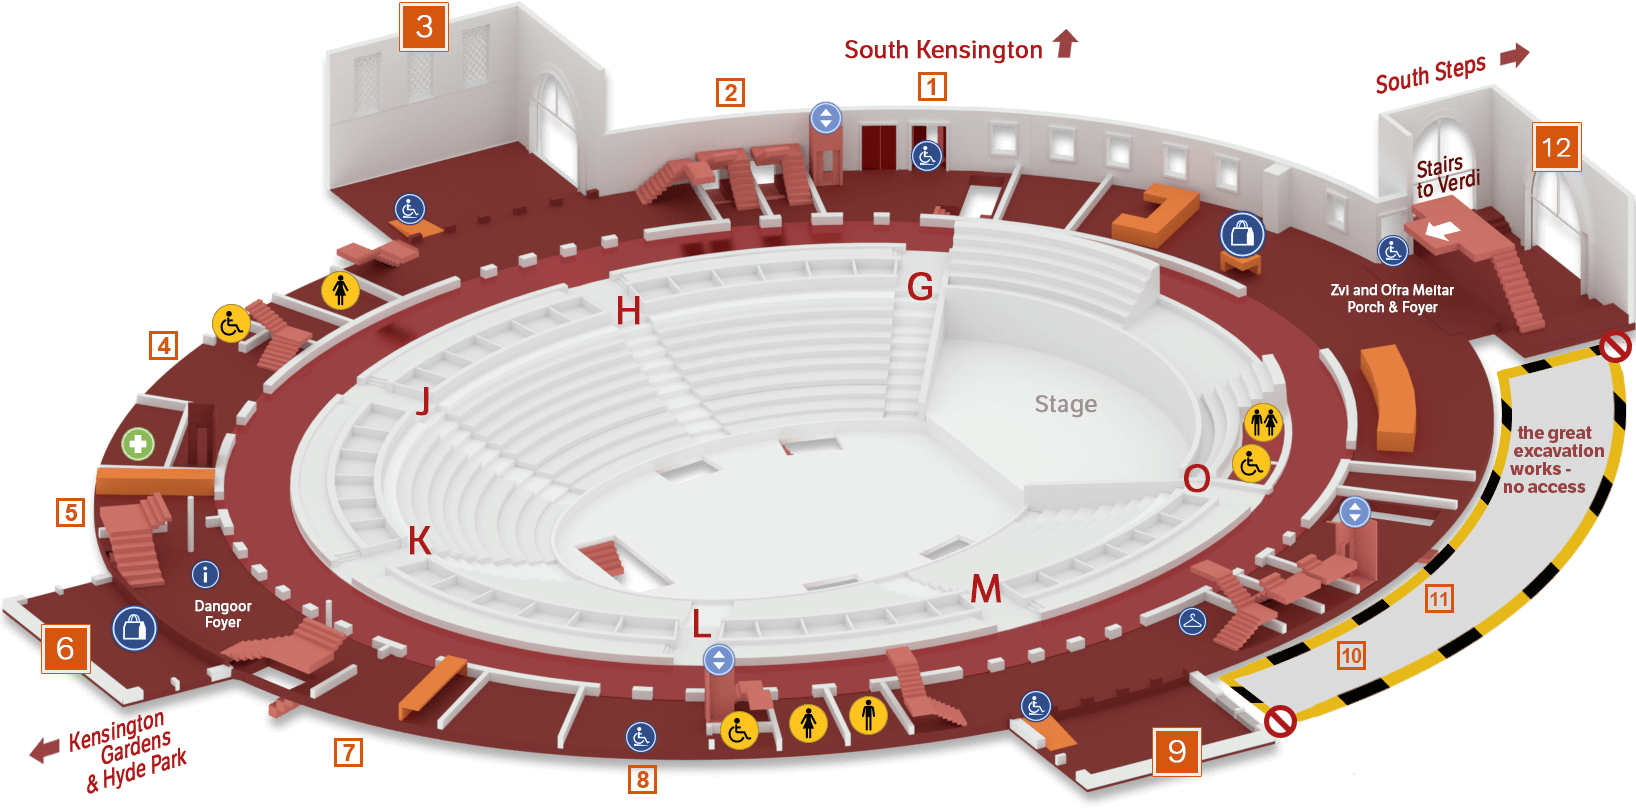 Venue plan royal albert hall for Door 12 royal albert hall